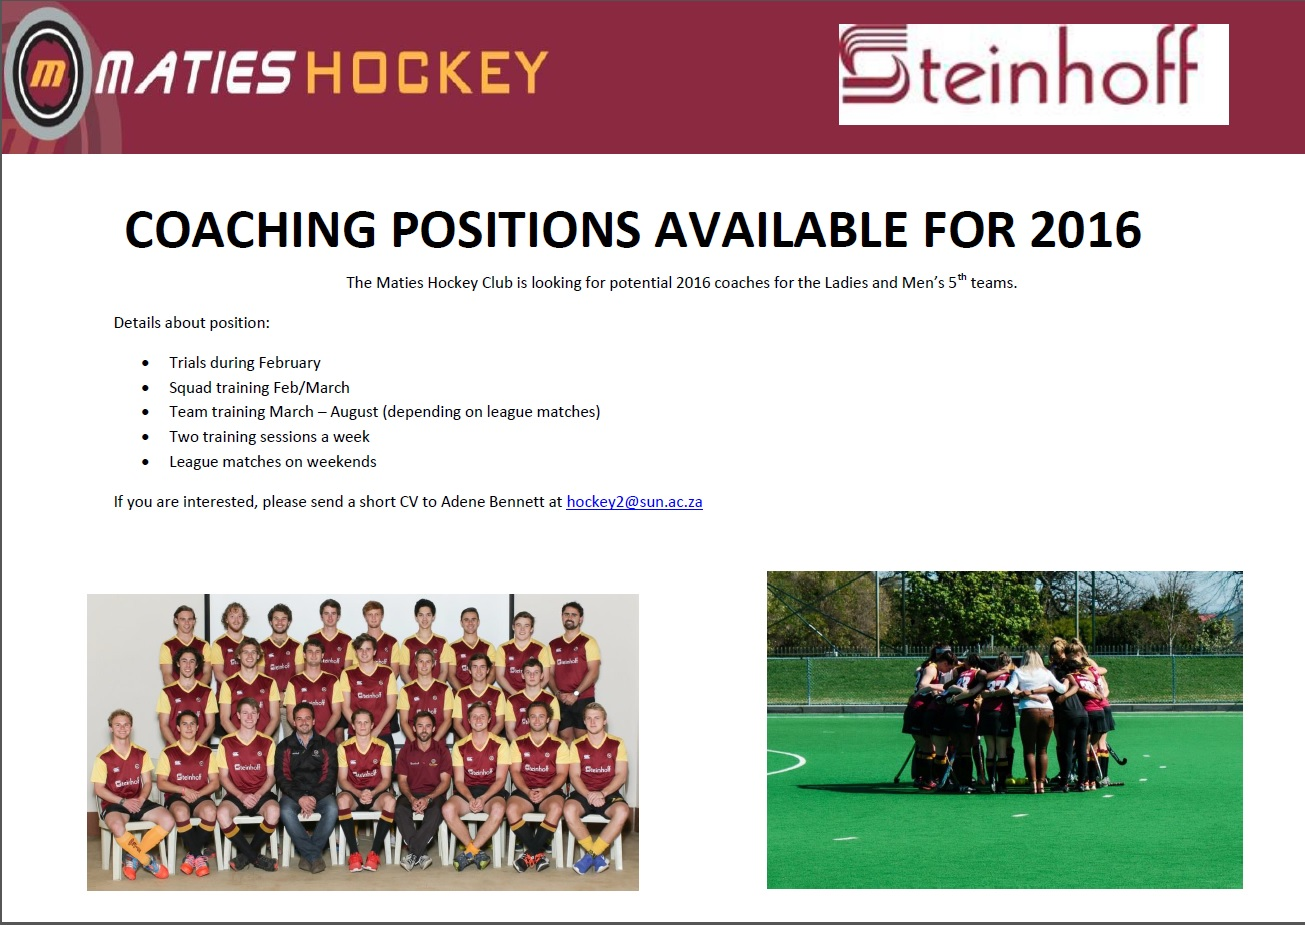 coaching positions available for 2016 maties hockey club